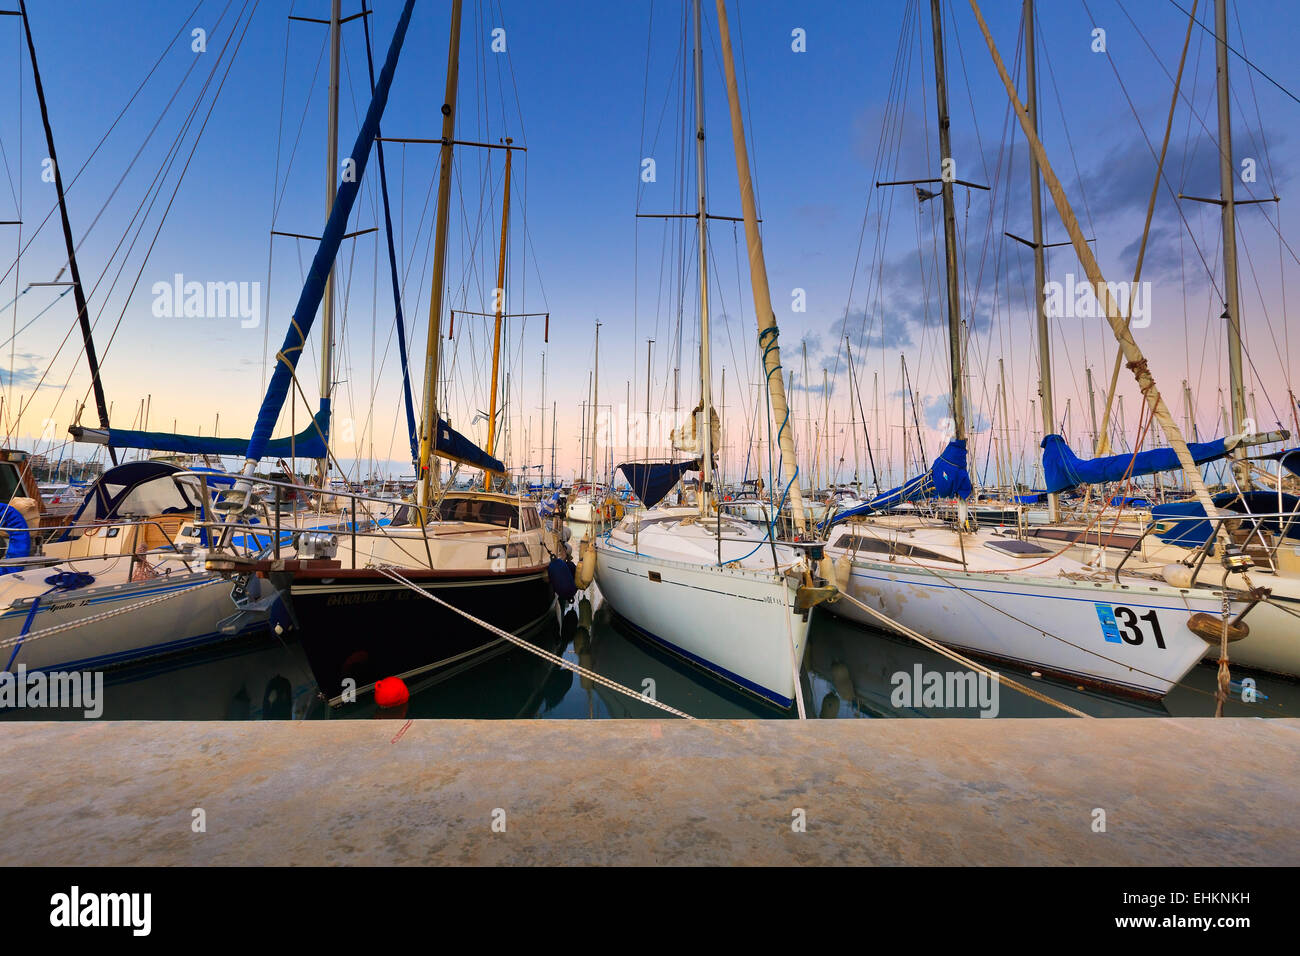 Sail boats in Kallithea in Athens, Greece - Stock Image